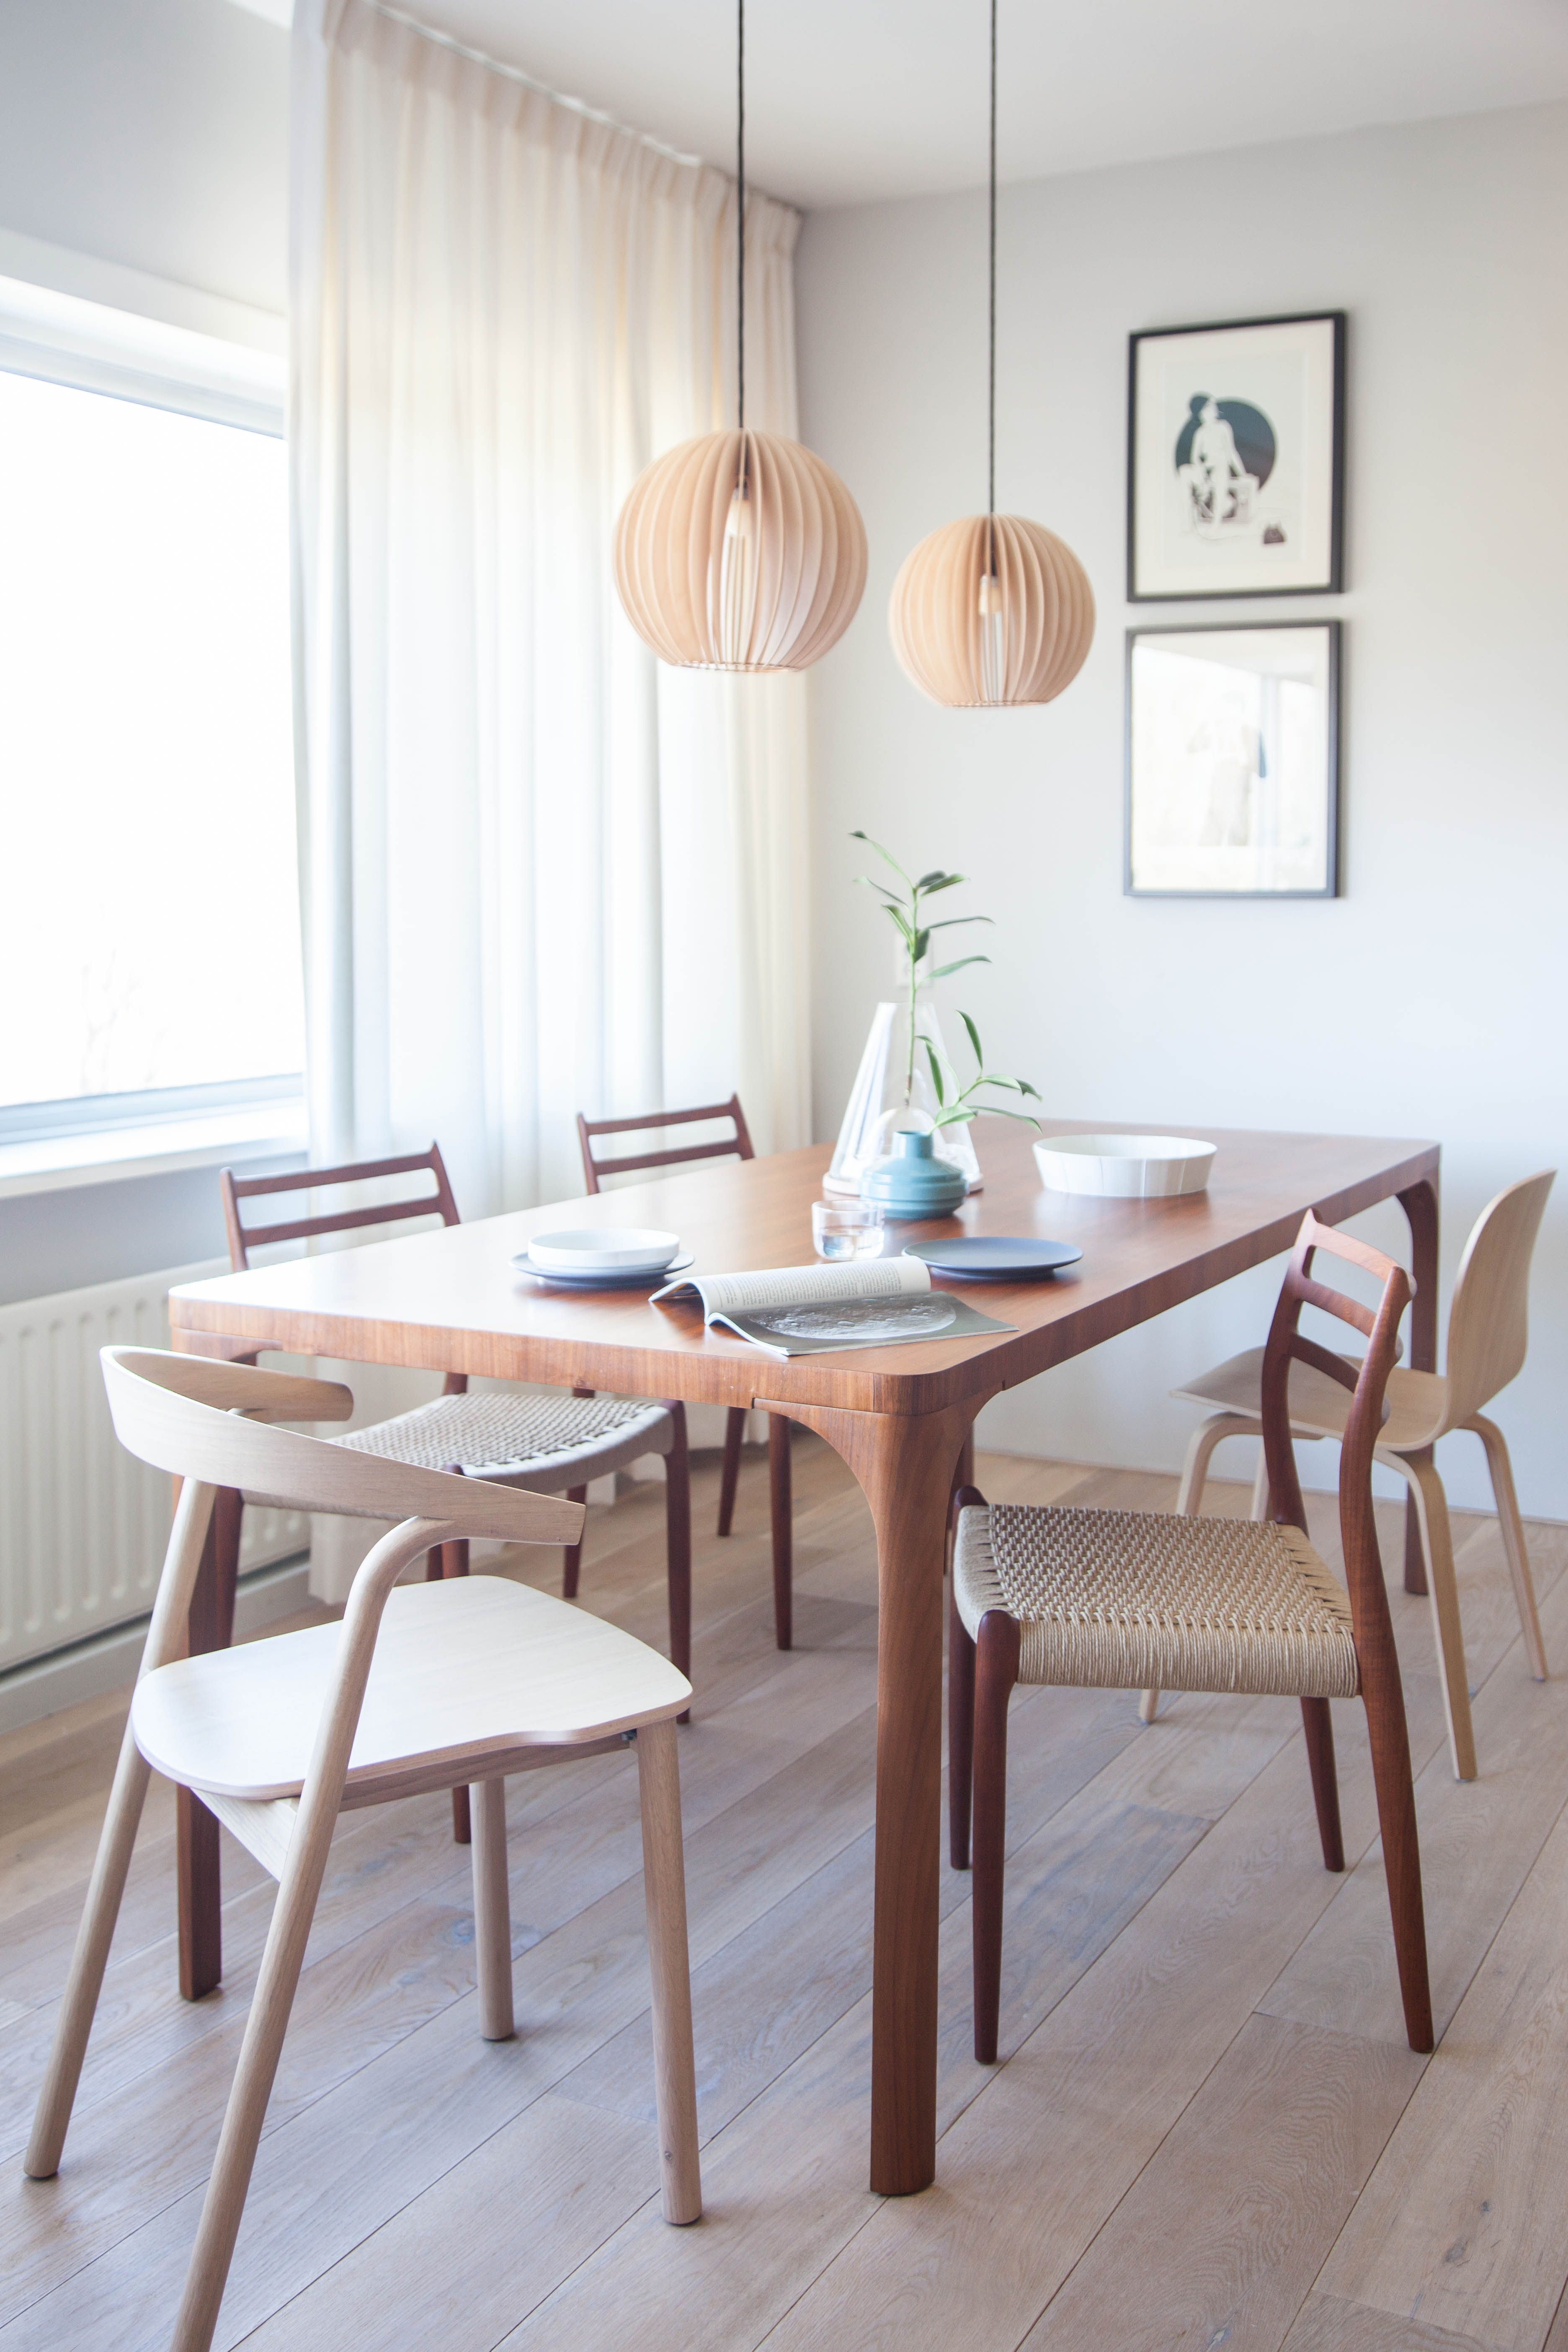 A Simplistic Vintageinfused Amsterdam Living Space Avenue Enchanting Dining Room Designs For Small Spaces Decorating Design